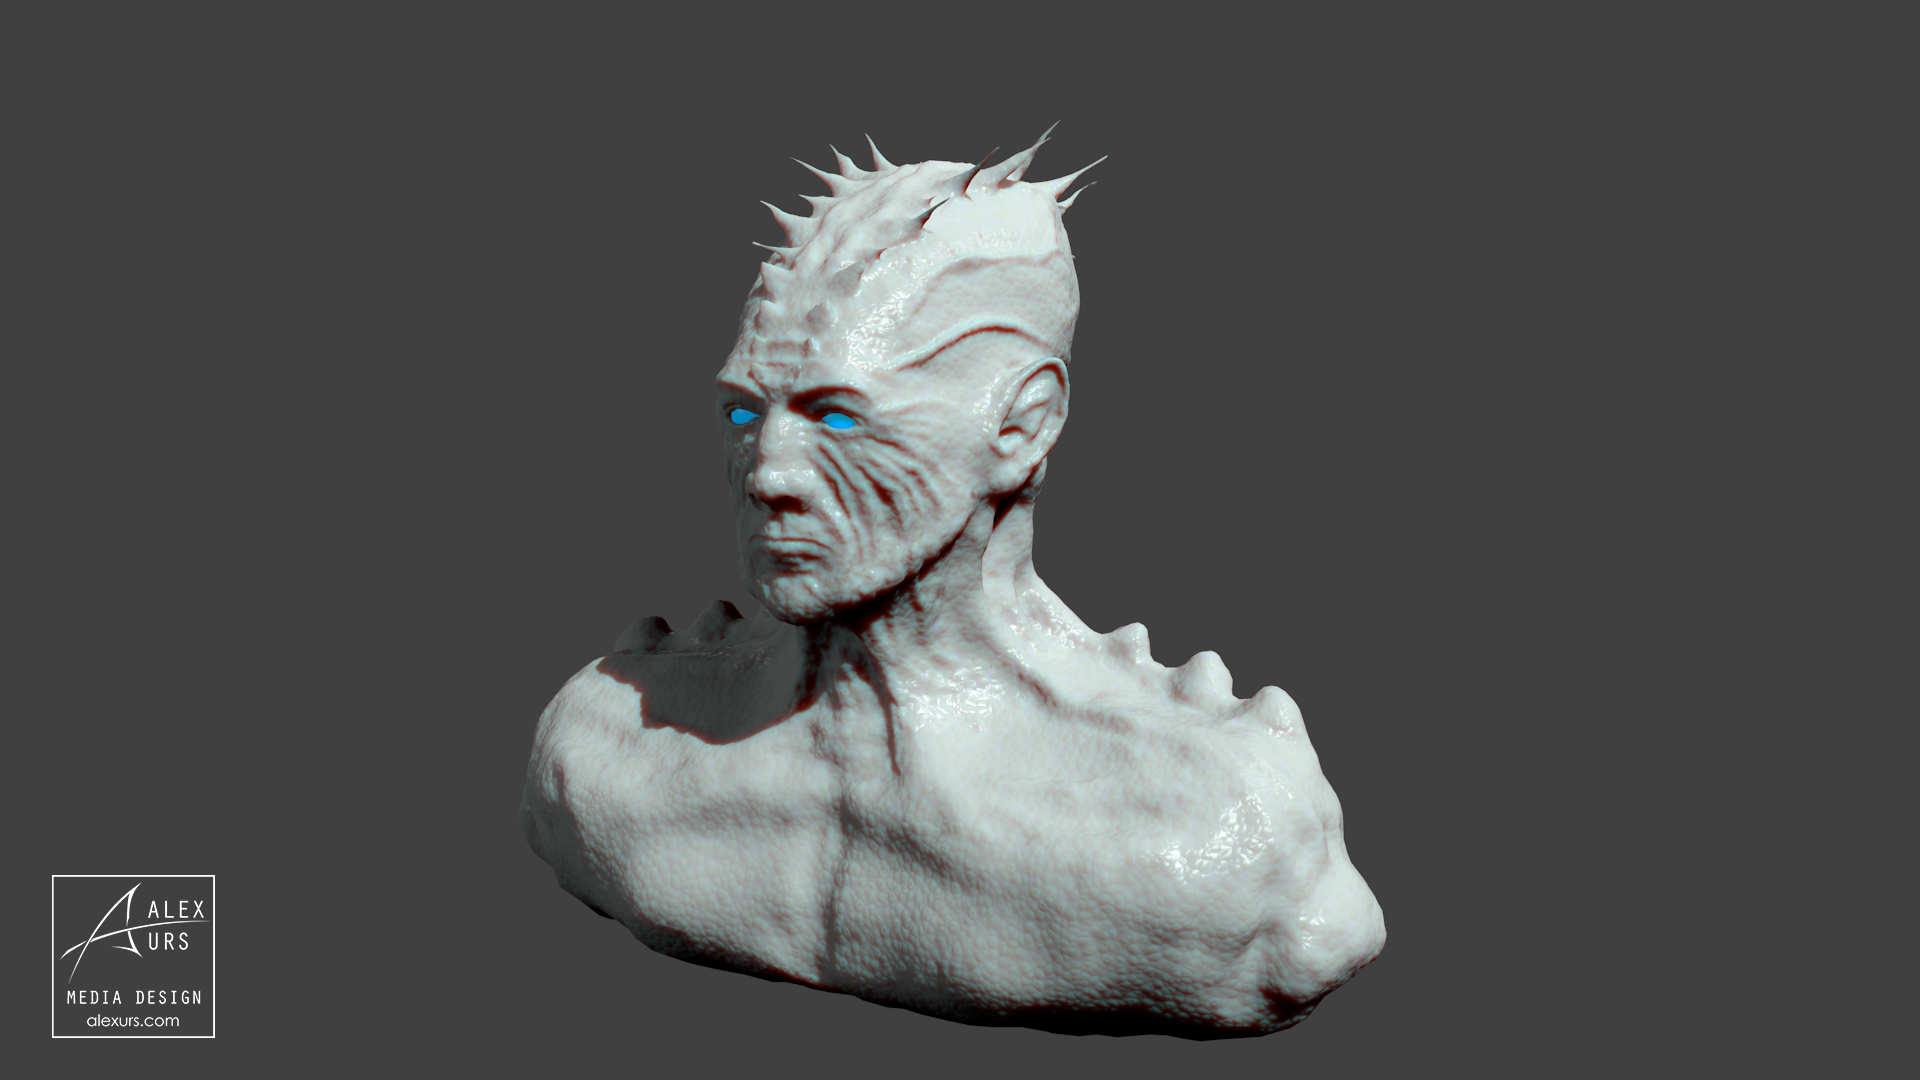 3D – Blender Sculpting